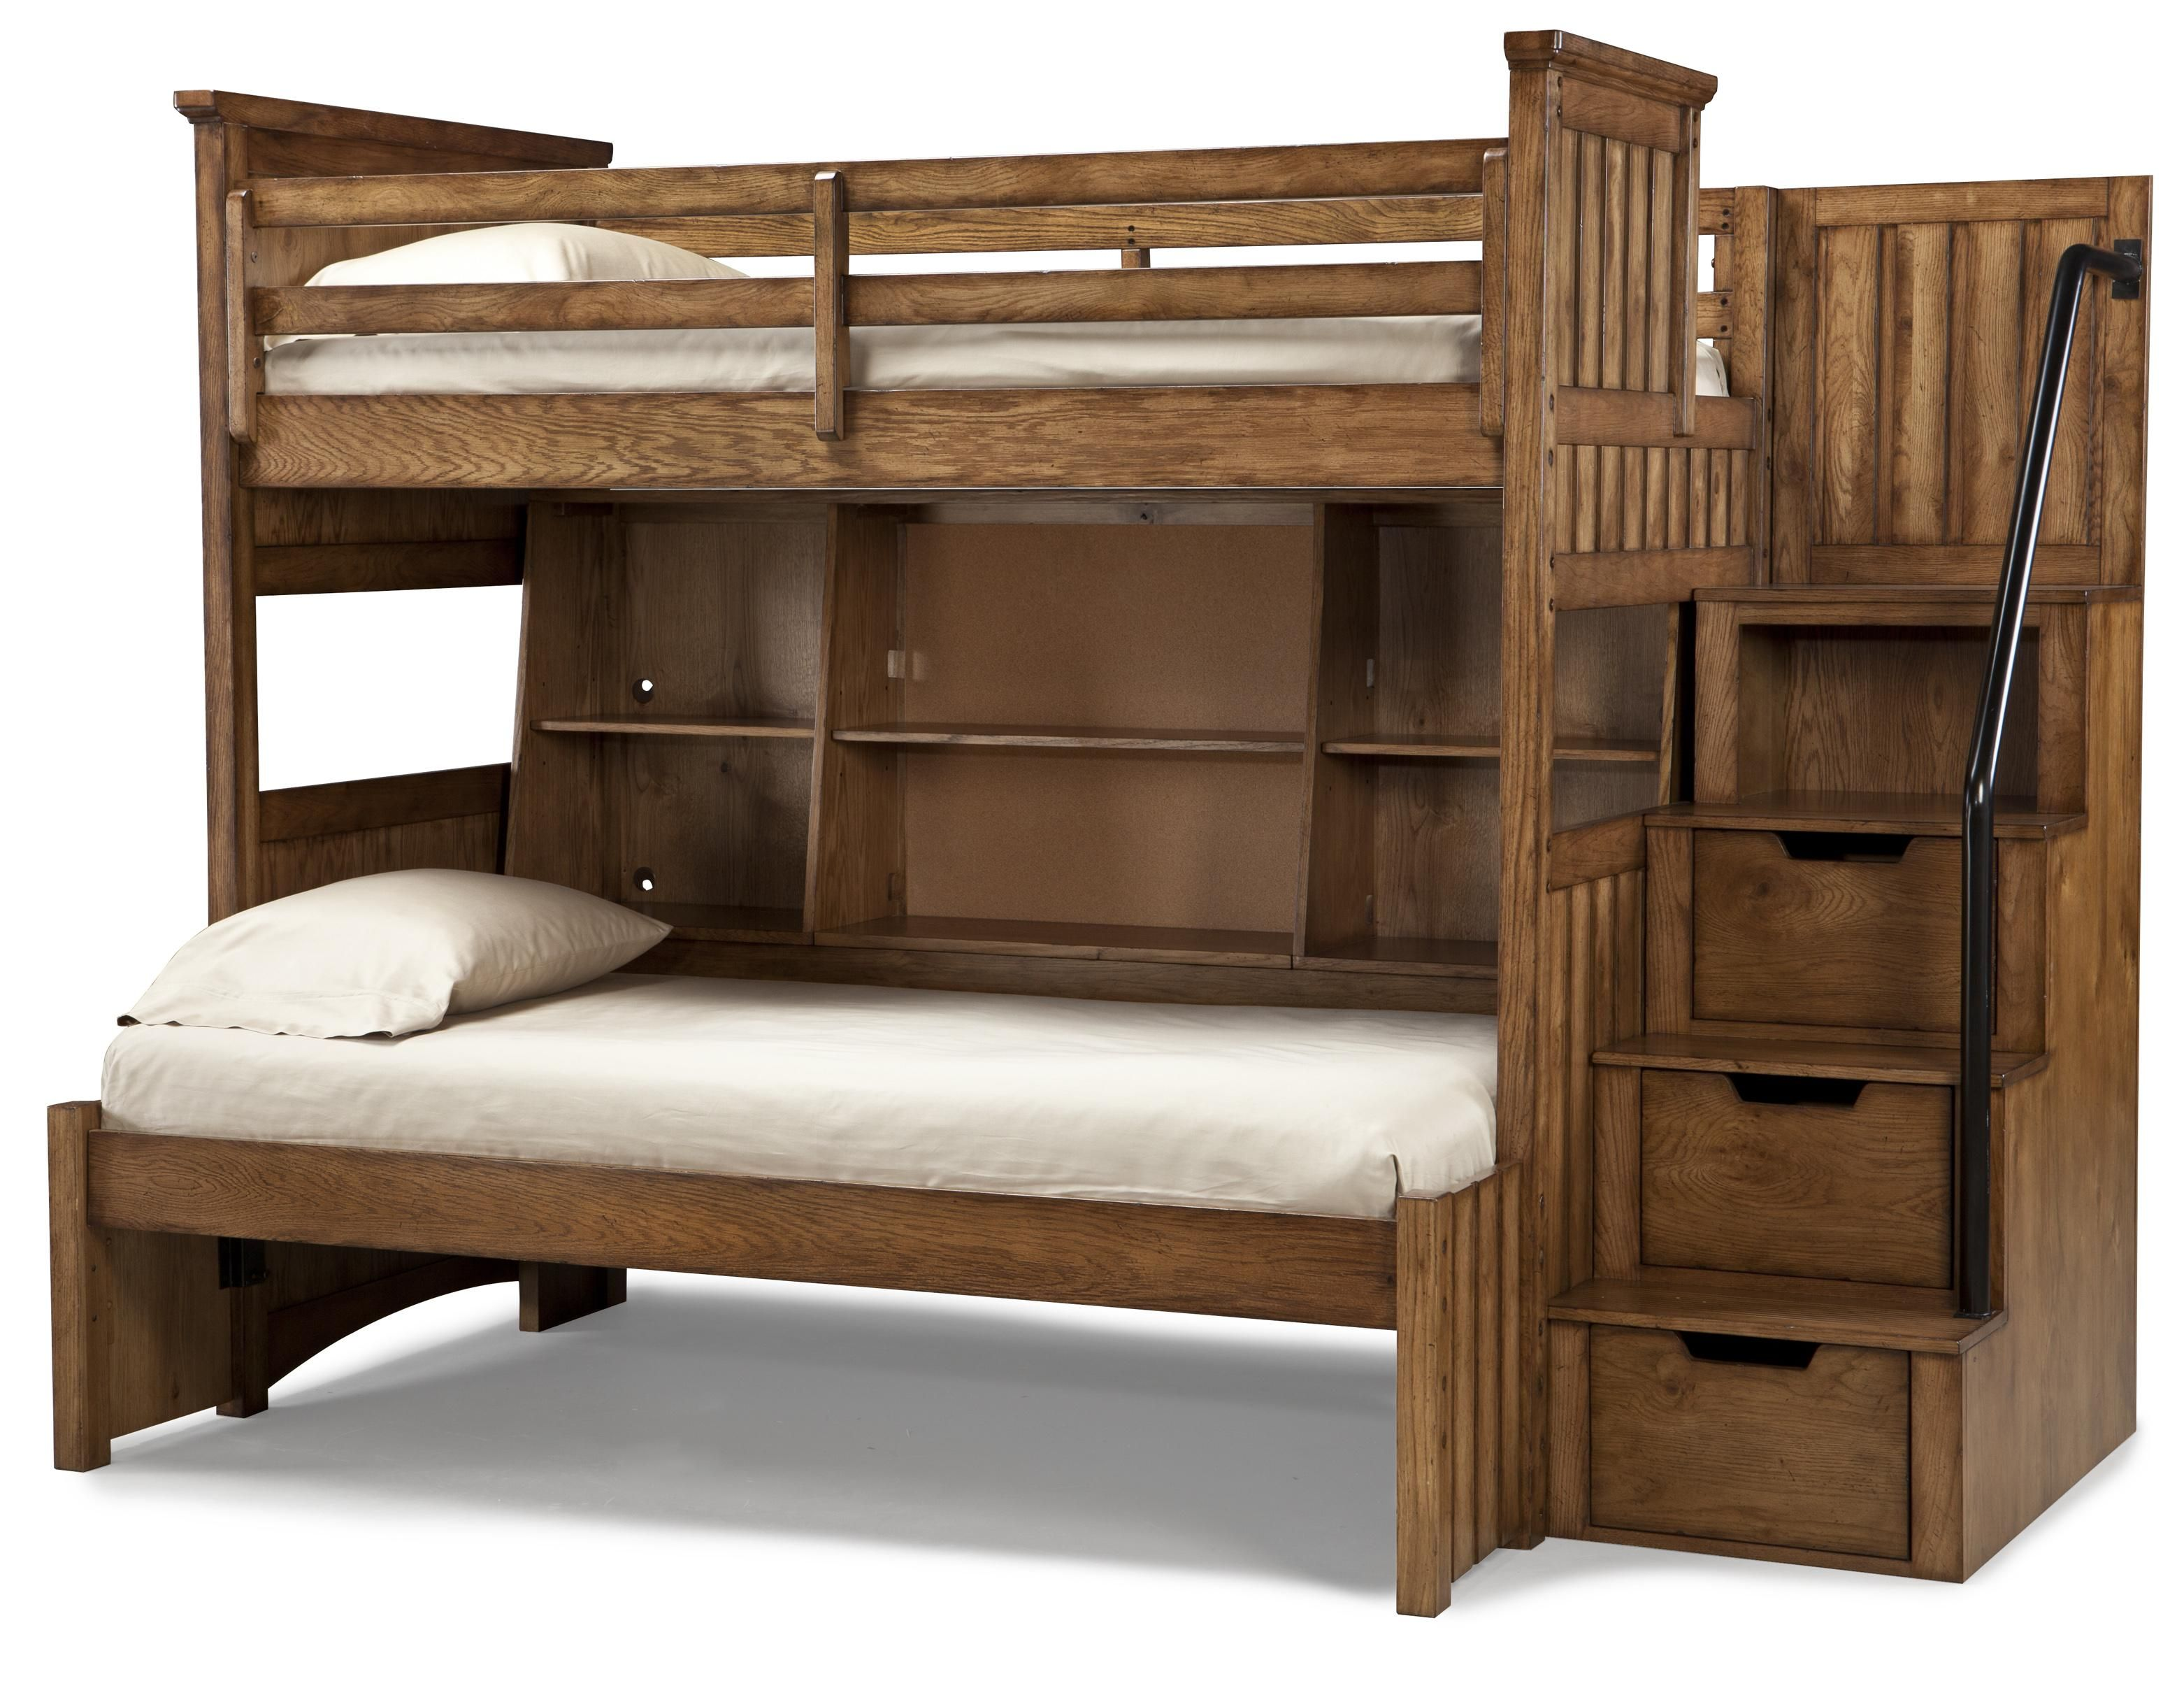 Classic Wooden Unfinished Bunk Beds With Stairs Hidden Storage As